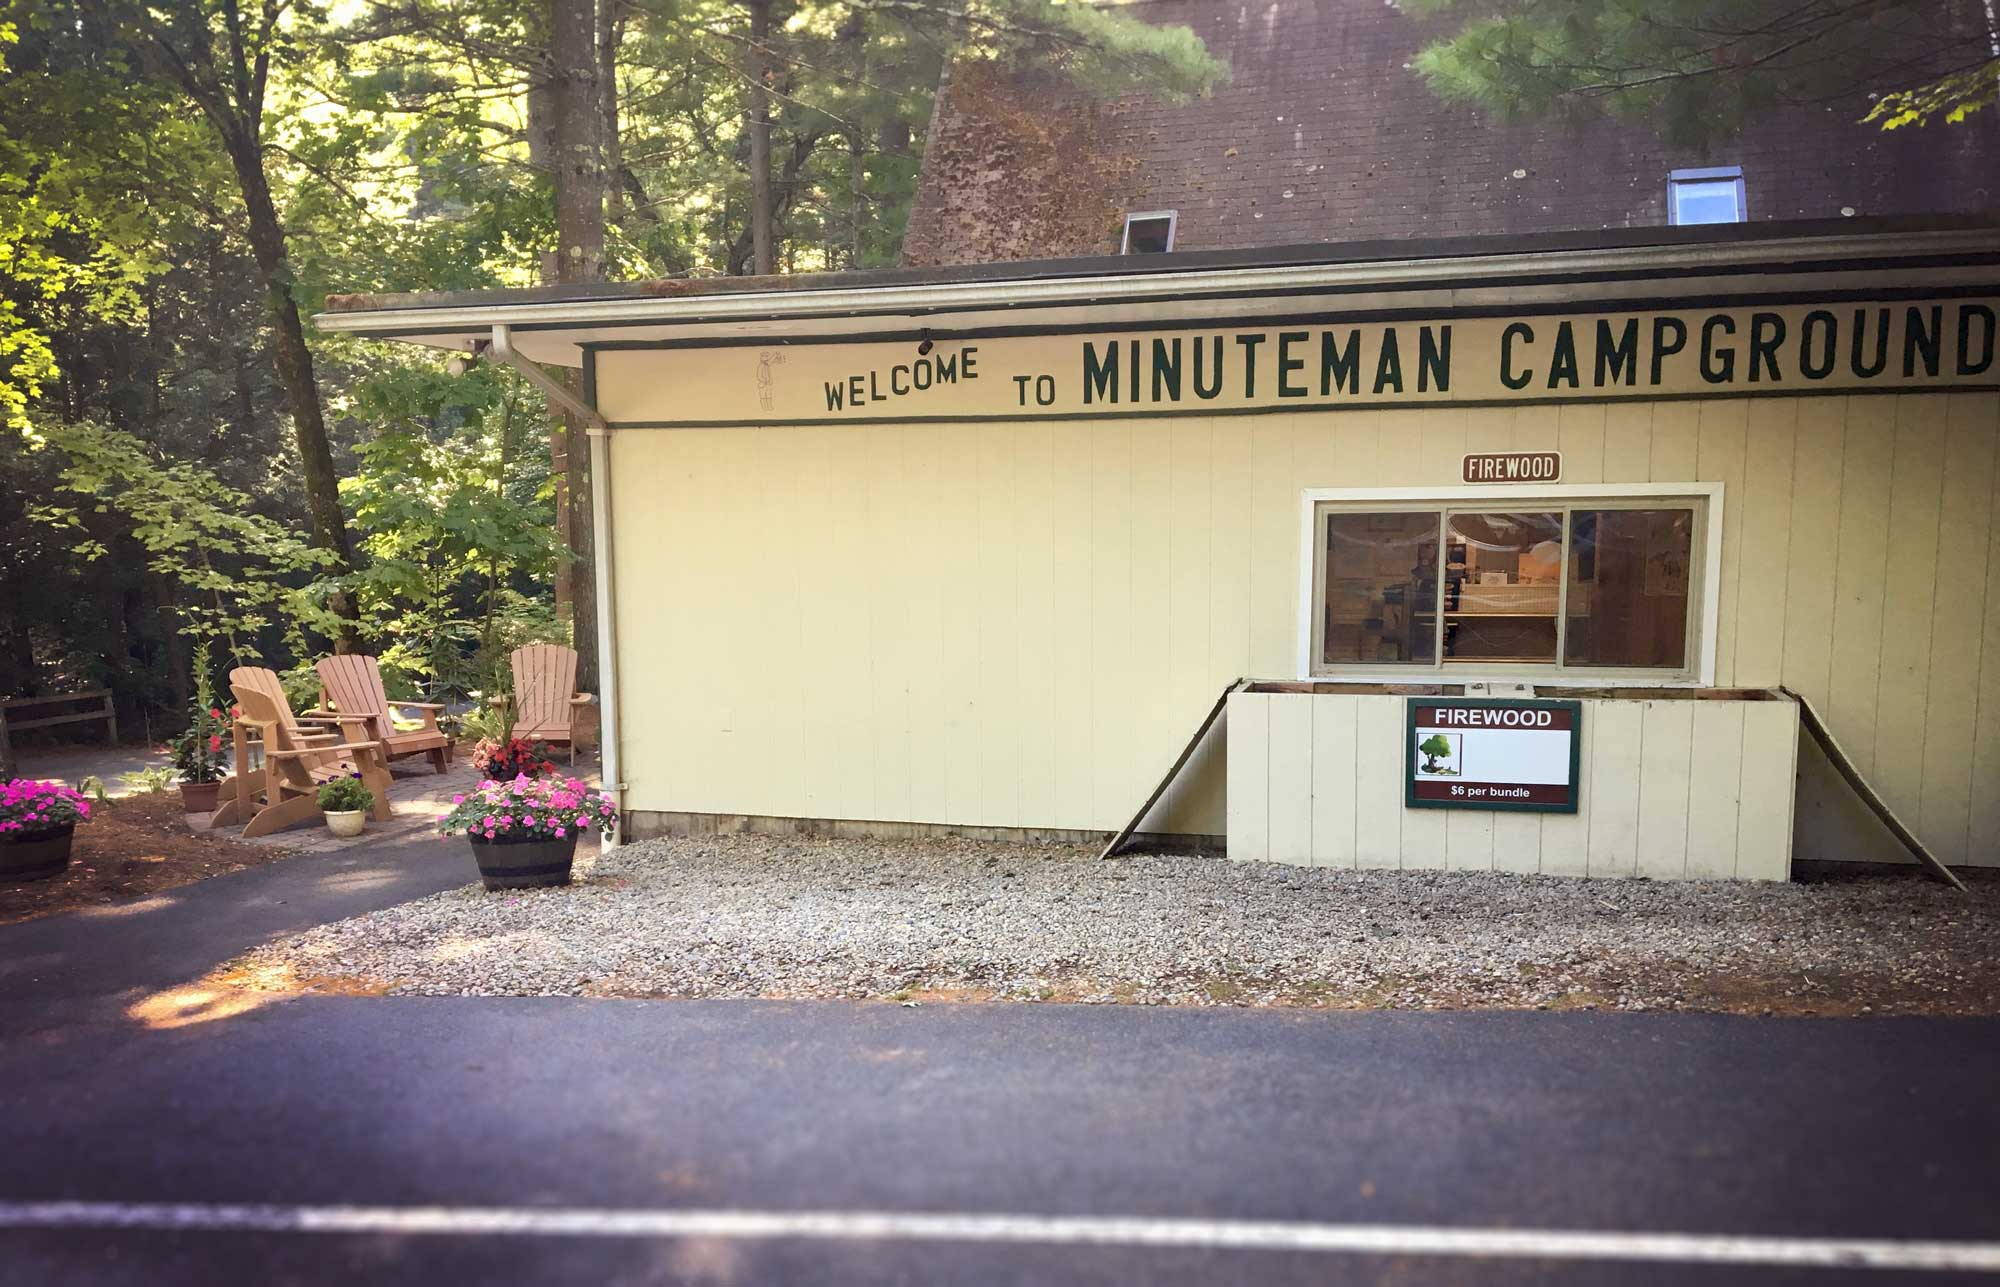 Exterior Boston Minuteman Campground check in building, Massachusetts